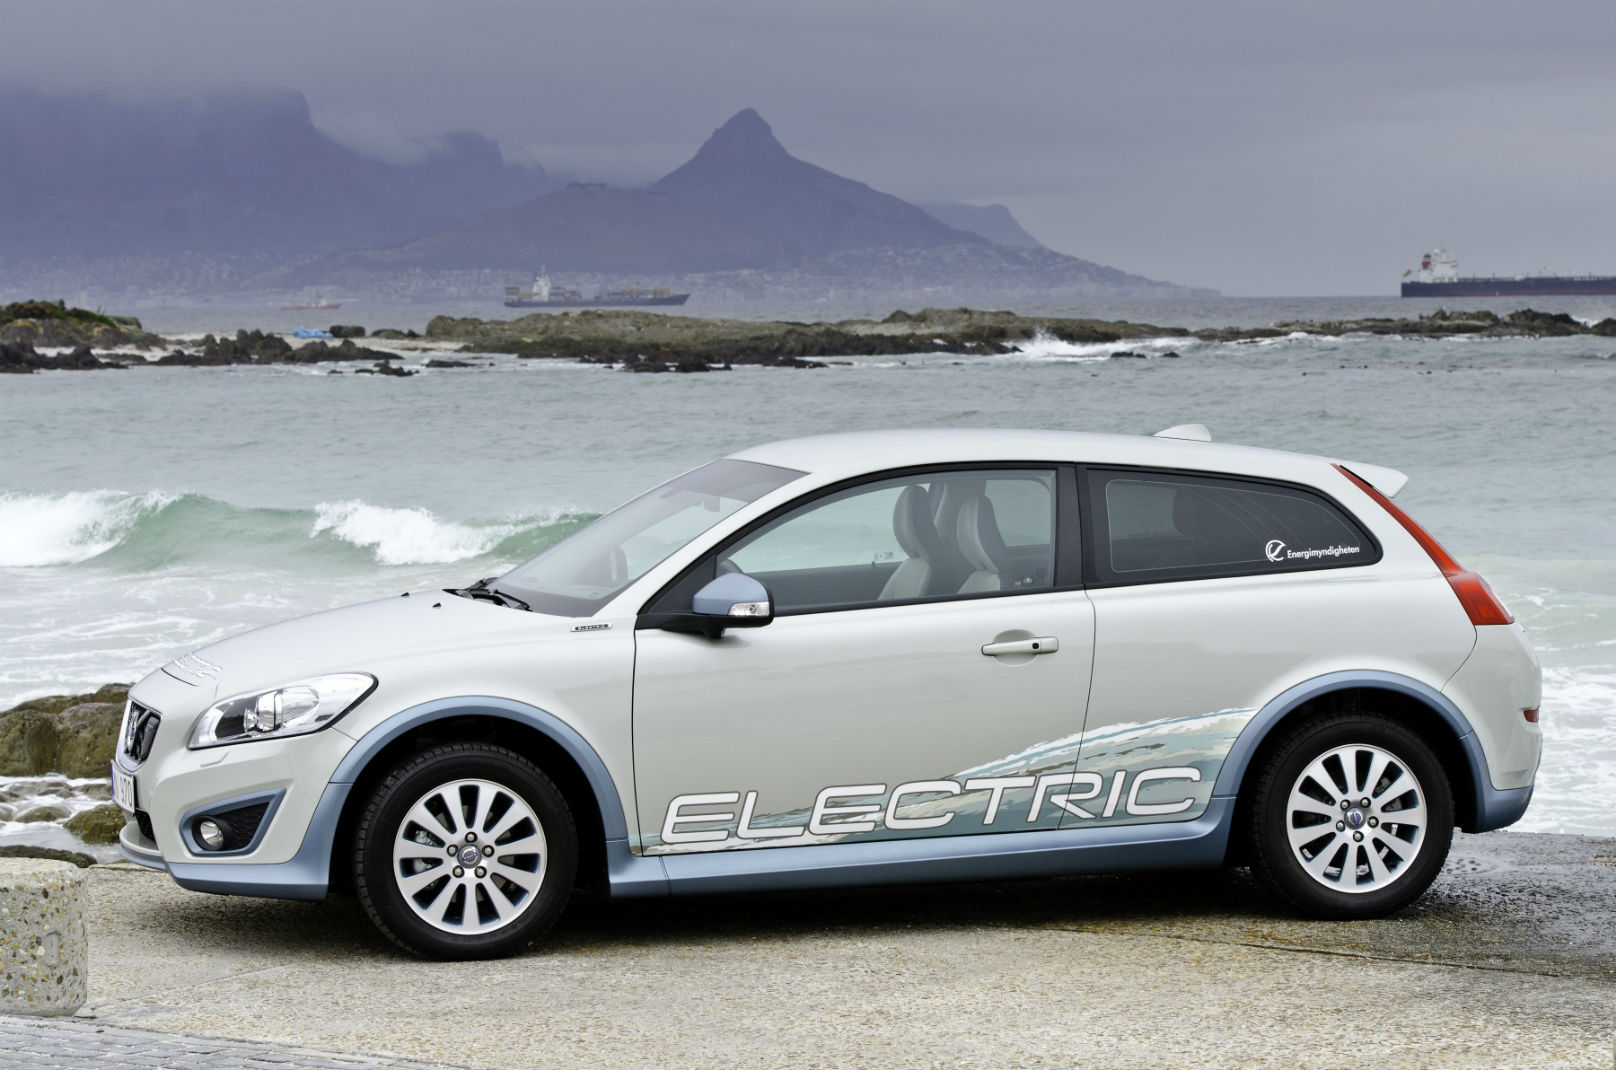 Electric vehicles ready